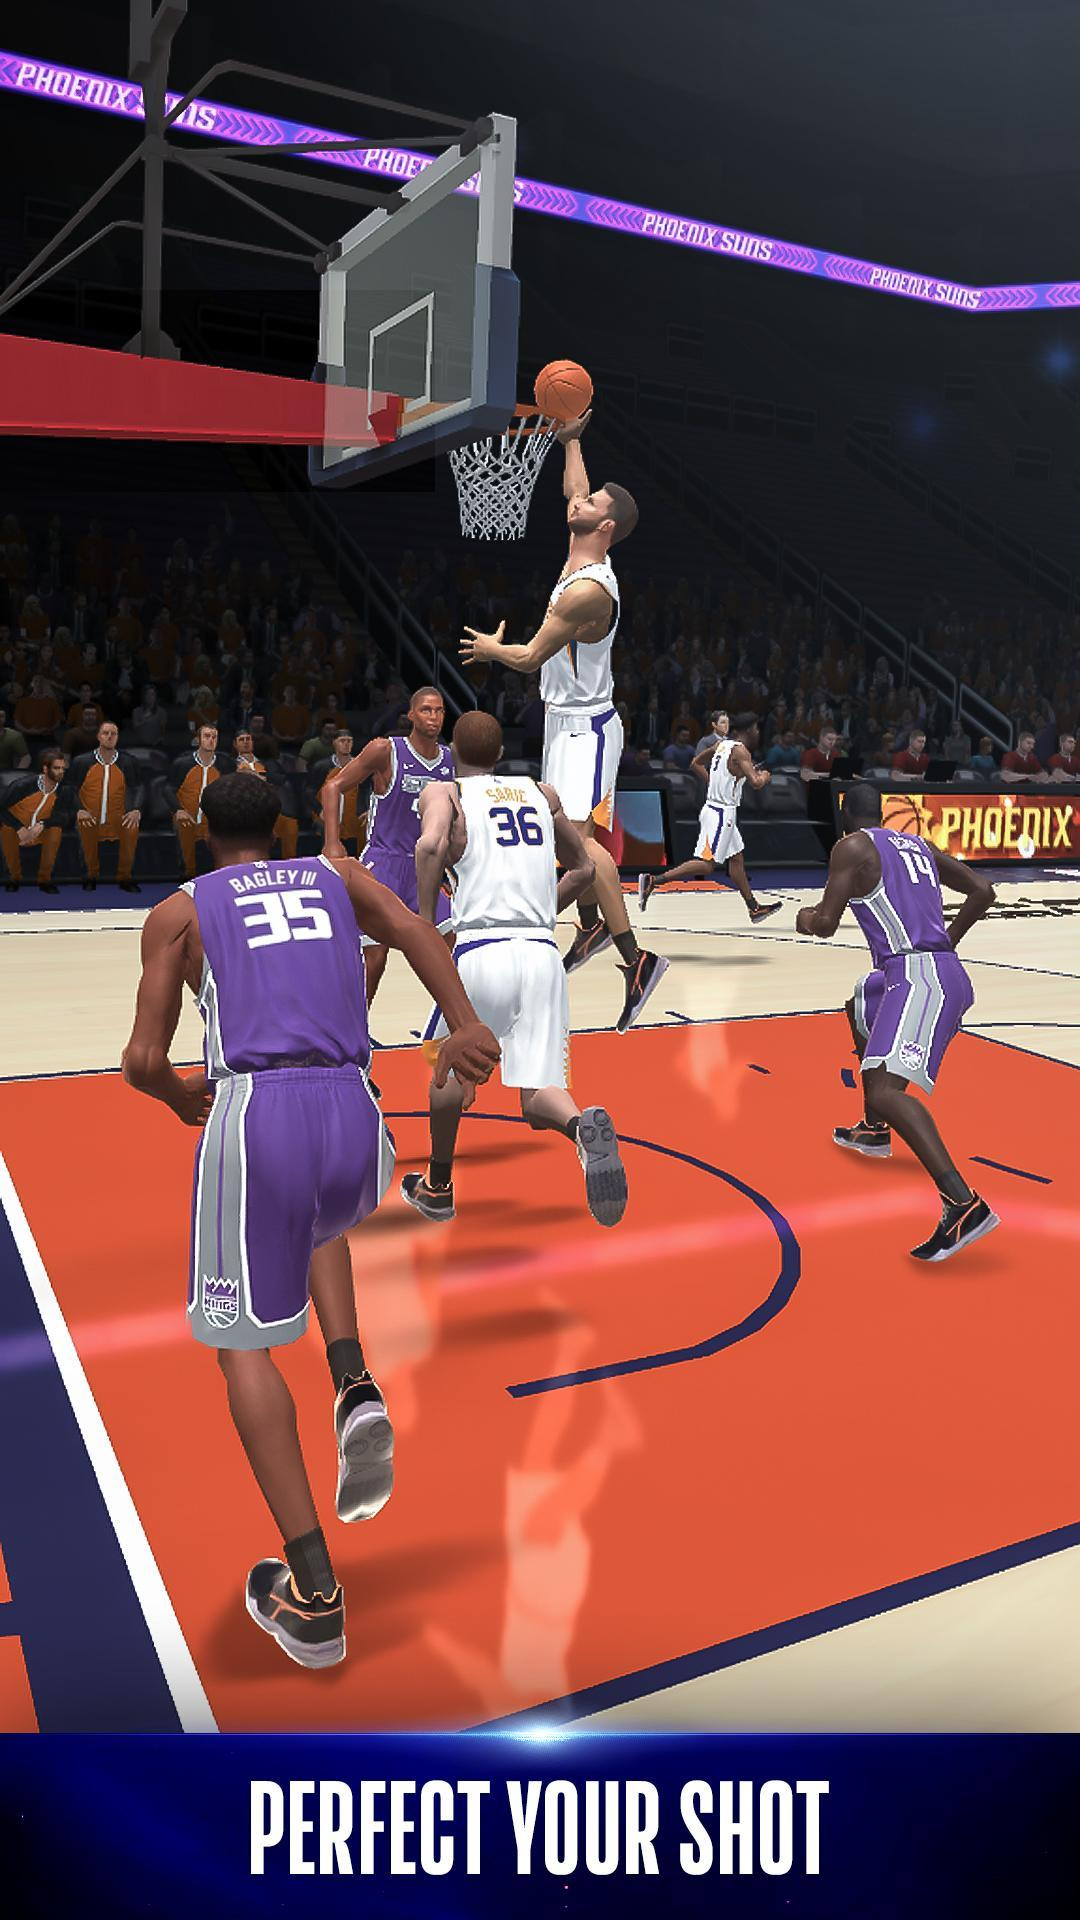 NBA NOW Mobile Basketball Game 1.5.4 Screenshot 2